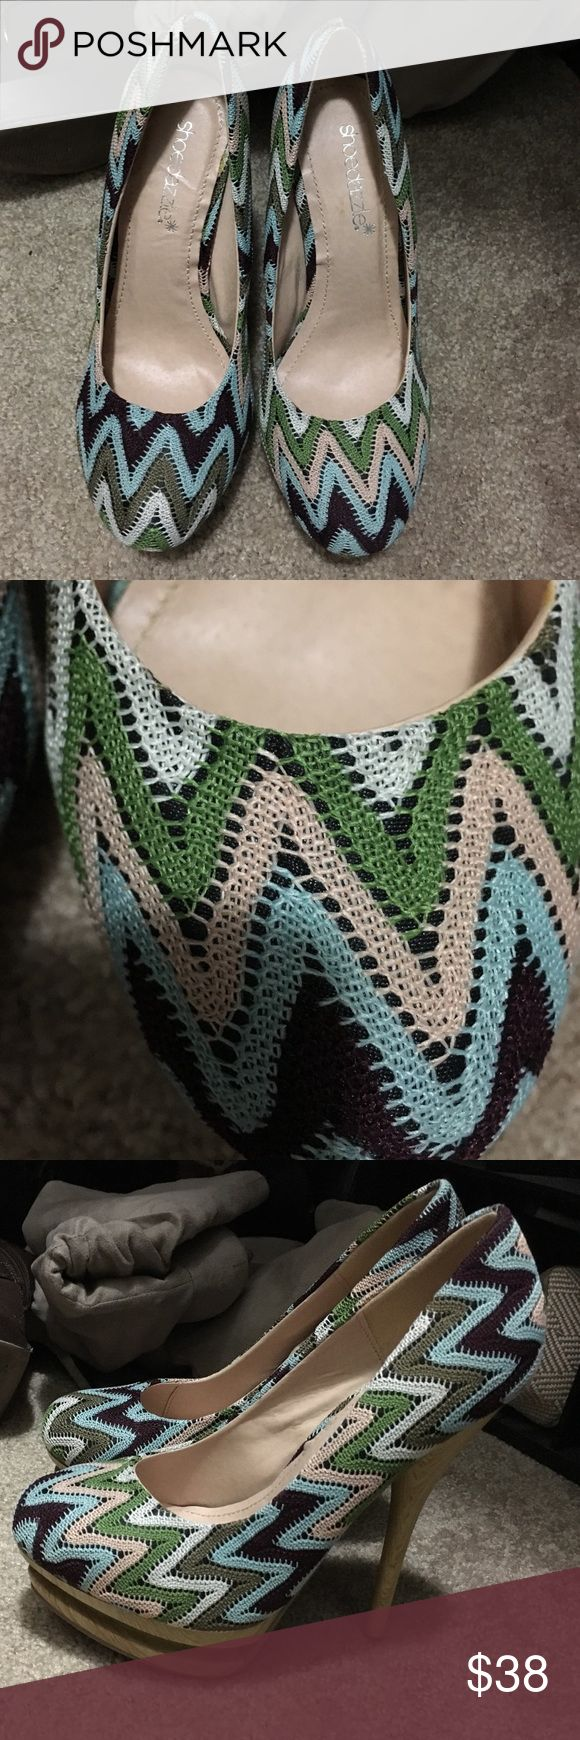 Beautiful crochet heels Never worn. NWOT. Great condition. 4+ inch wooden heel. Reasonable offers welcome. Comes with pink shoe dazzle bag Shoe Dazzle Shoes Platforms